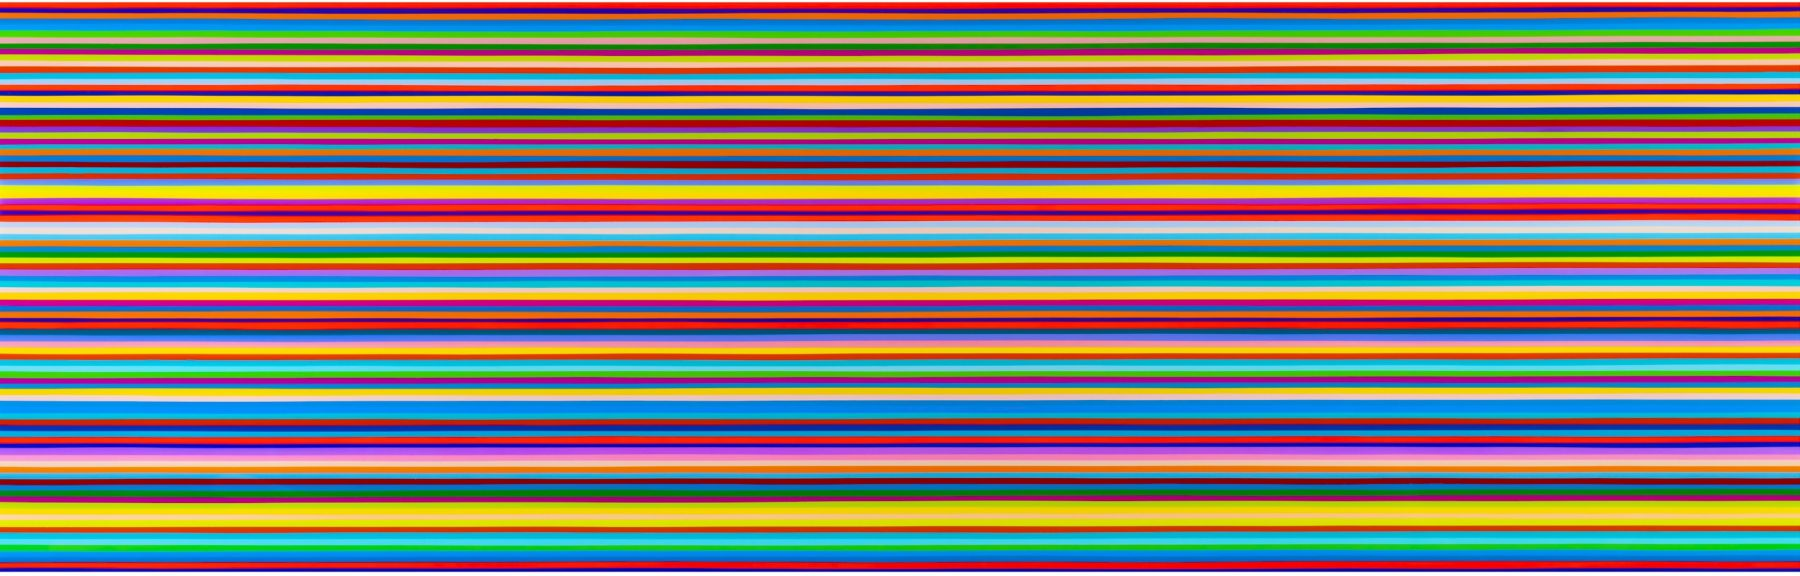 Heidi Spector, Only Love Can Save the Day, 2019, Liquitex with resin on Birch panel, 24 x 72 x 2 inches, Signed, titled and dated on the verso, Horizontal panel with bright and colorful thin stripes set in a glass-like surface, Heidi Spector creates geometric minimalist art inspired by musical rhythms that are composed of repetitive cubes in candy-like colors that vibrate.